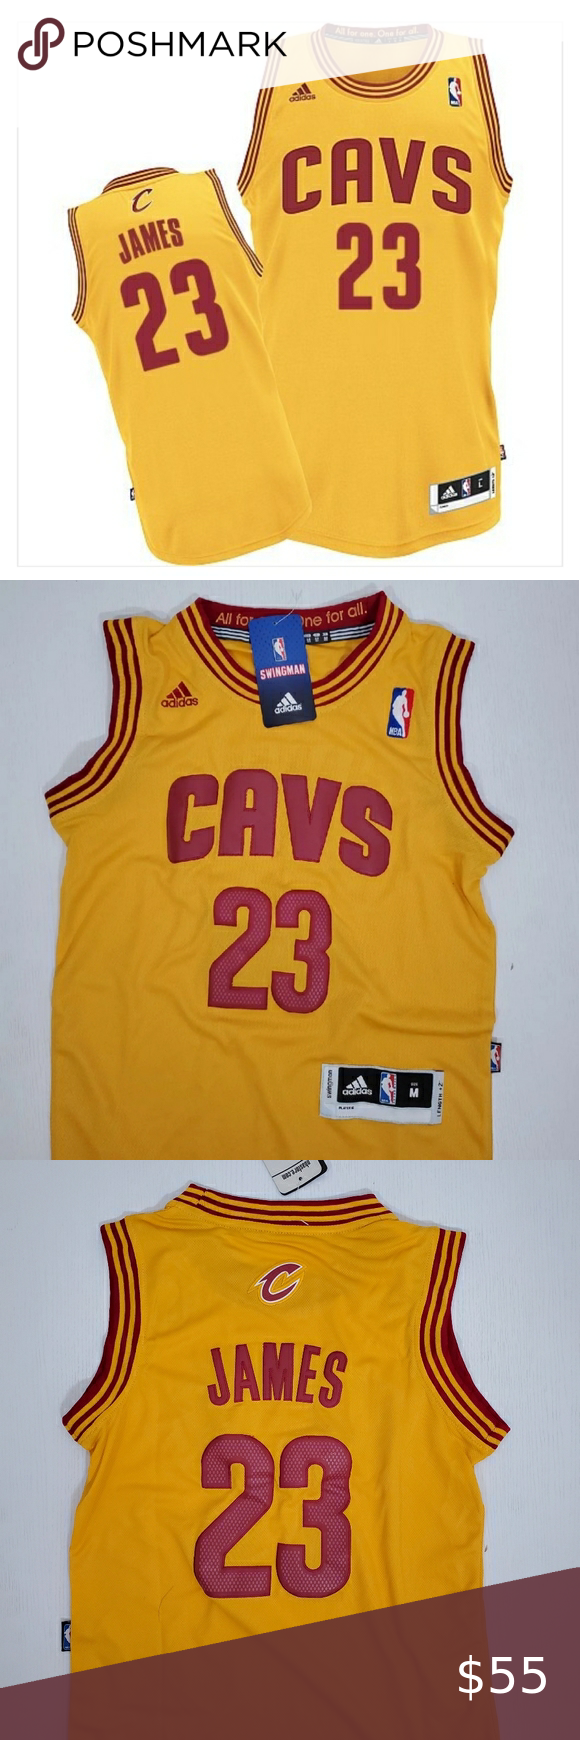 Nba Cleveland Cavs Lebron James Jersey In 2021 Nba Cleveland Lebron James Long Sleeve And Shorts